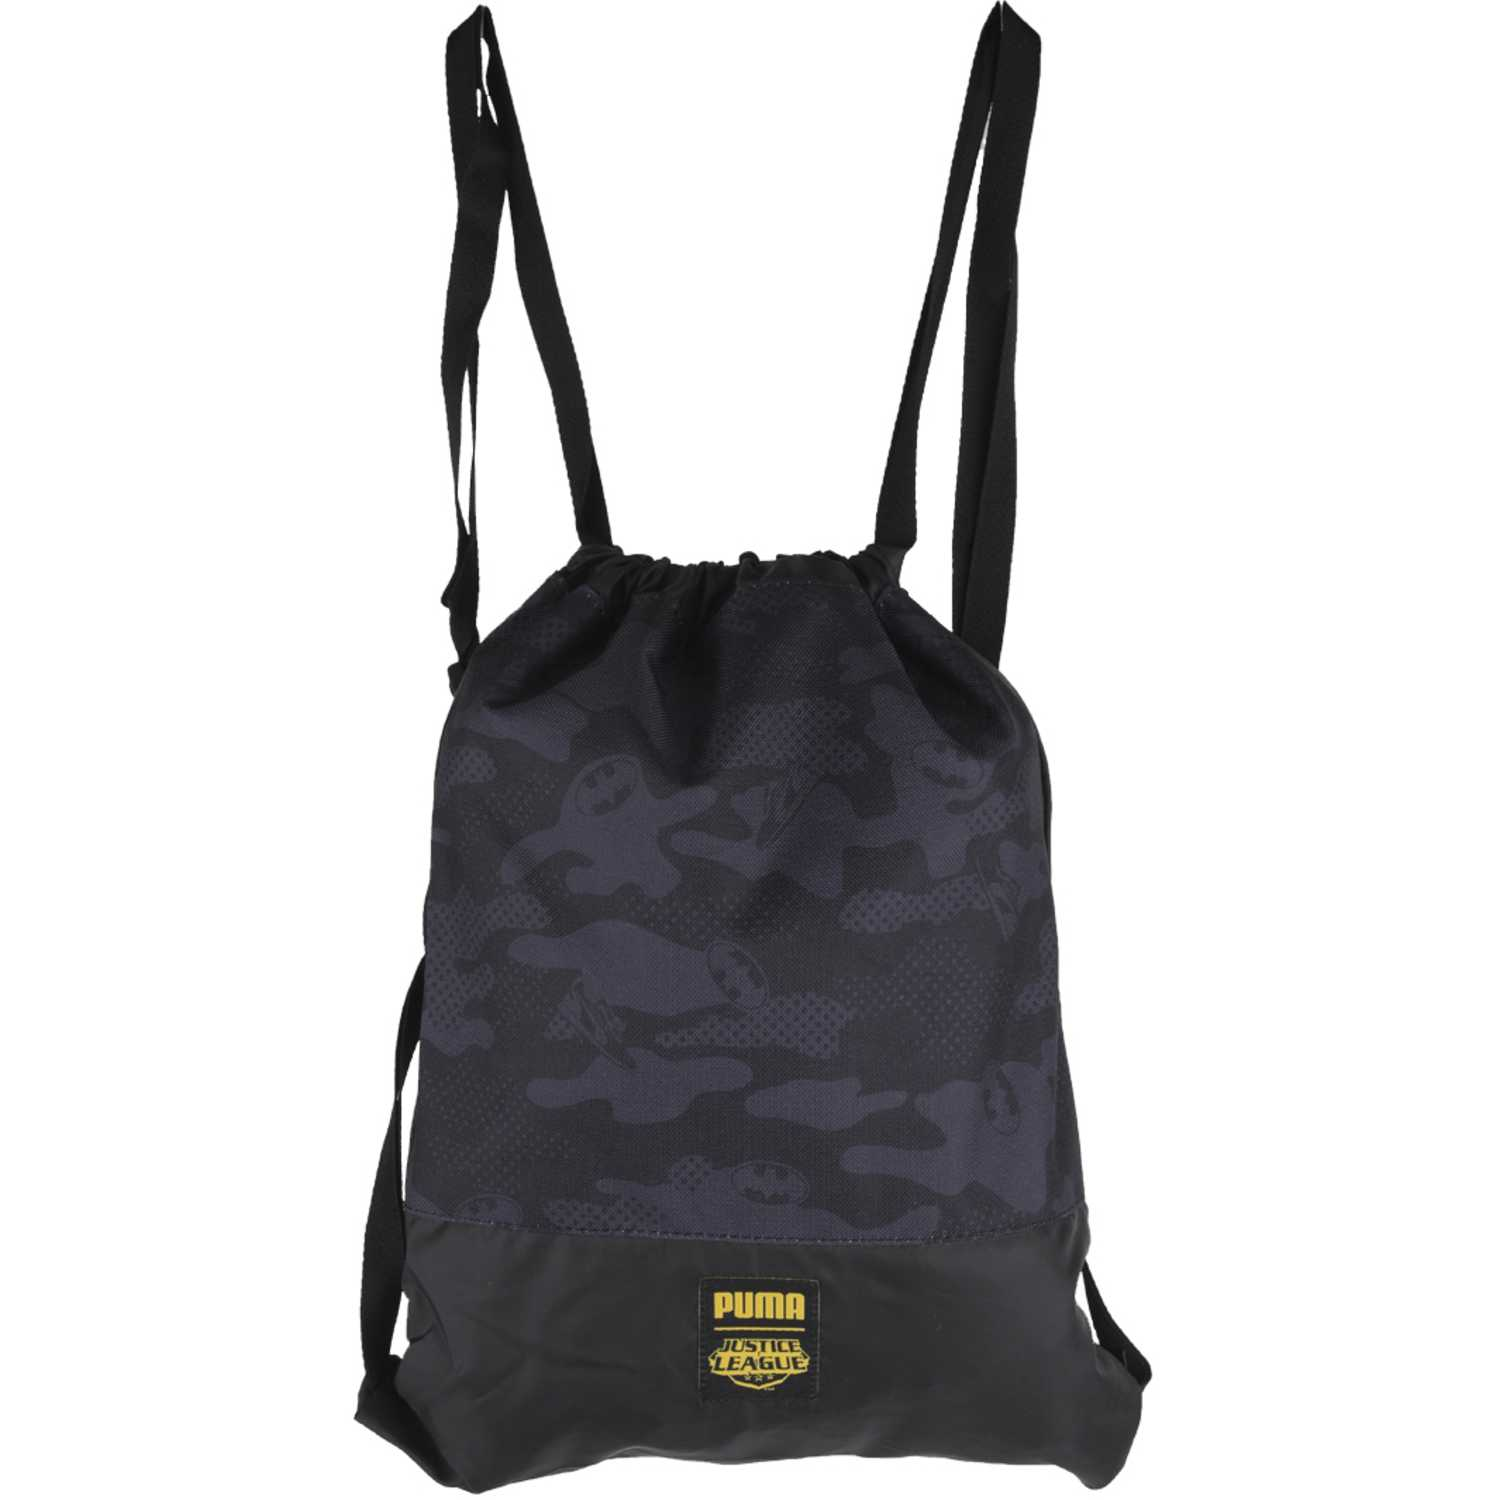 Bolso de Niño Puma Negro justice league gym sack (batman)